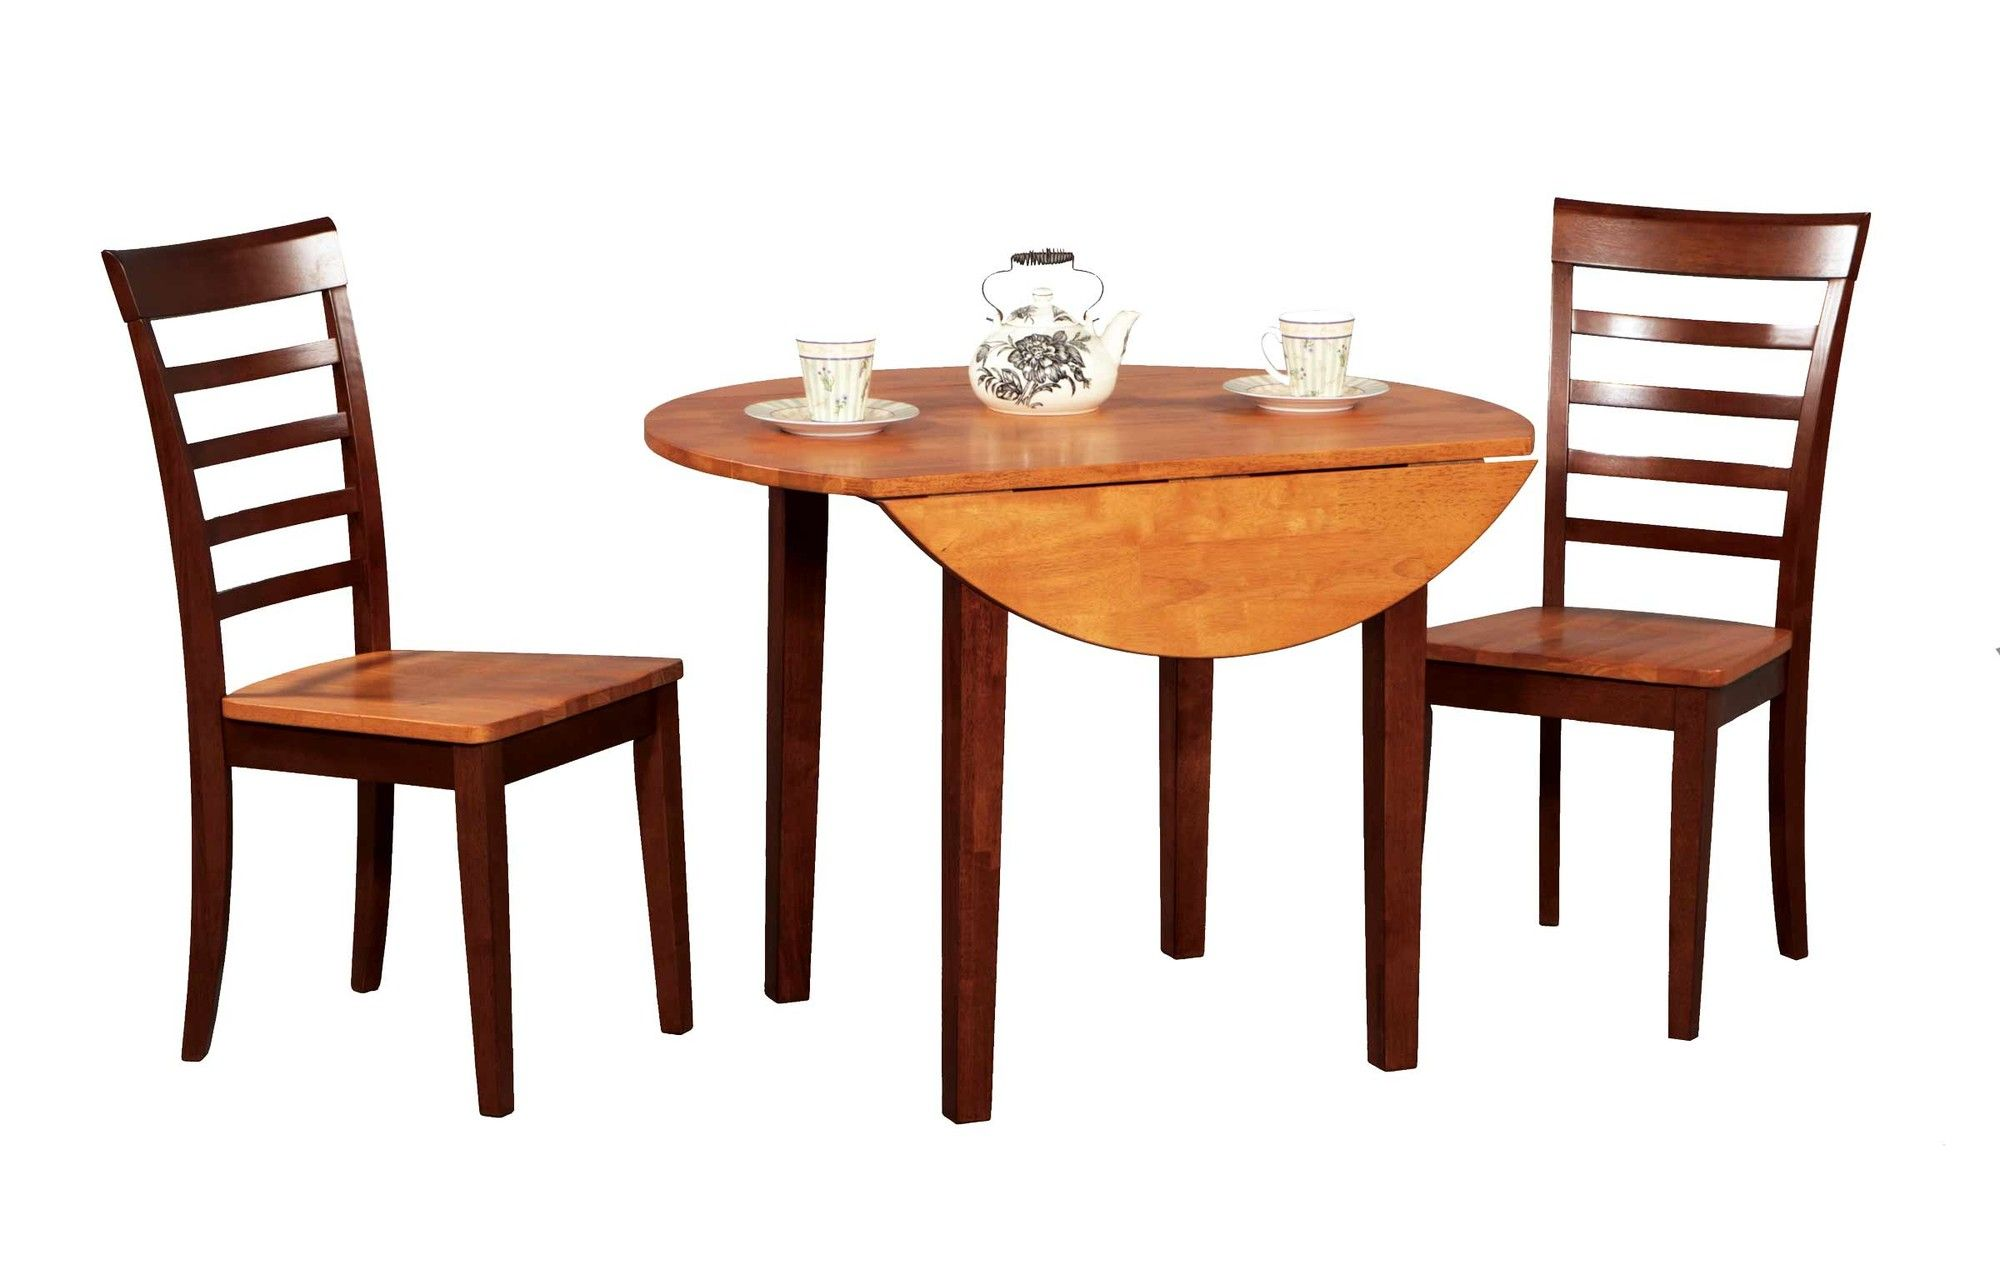 Contemporary Farmhouse 3 Piece Dining Set - Wayfair